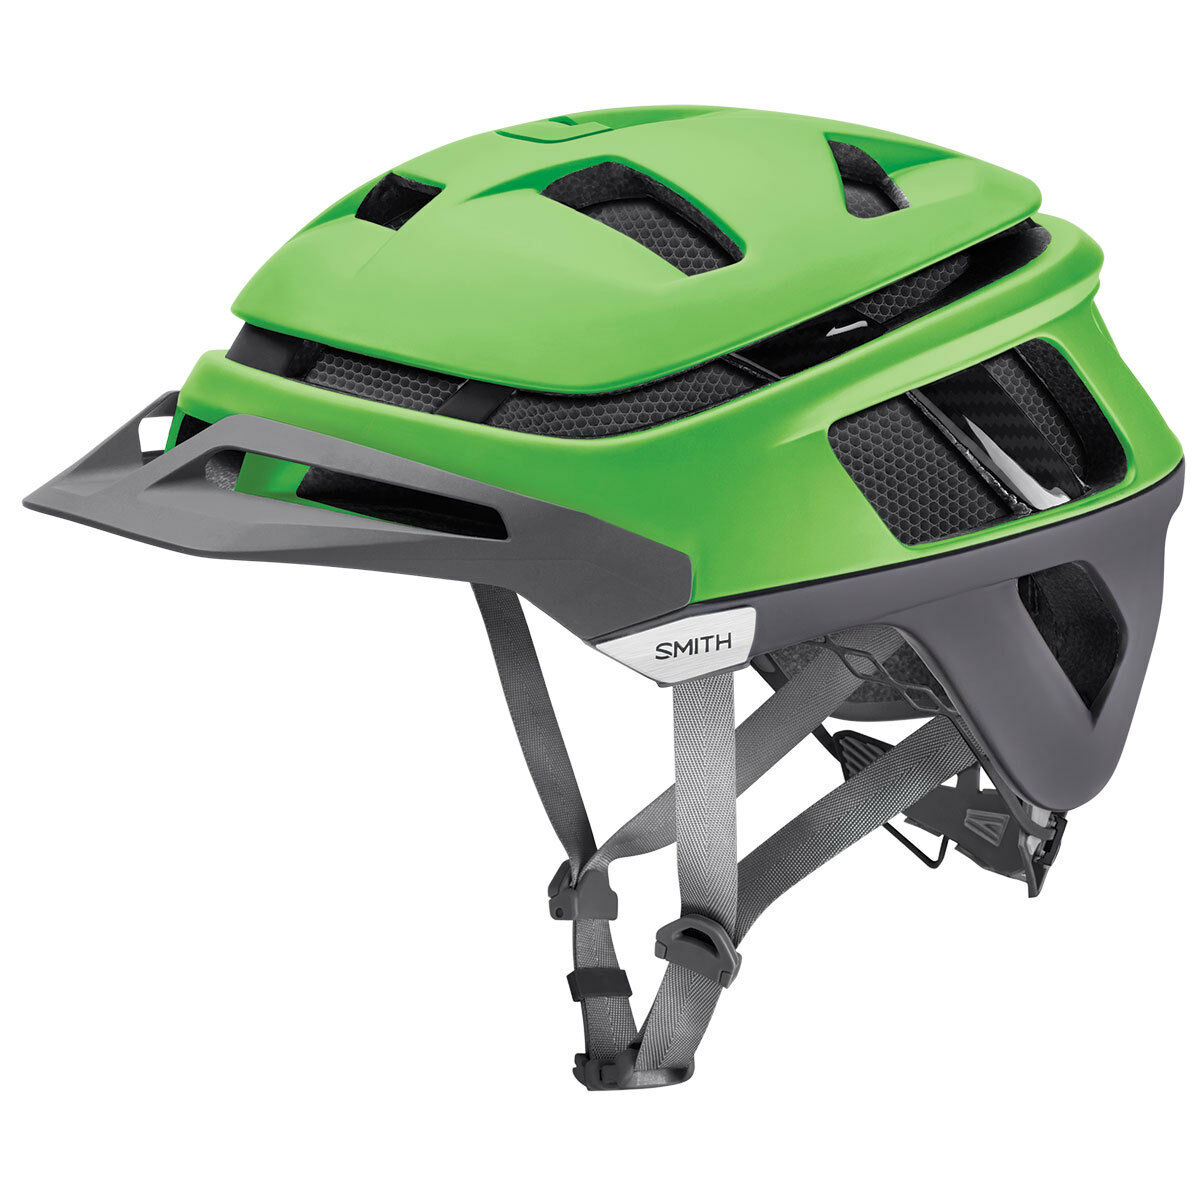 SMITH Forefront Cycle Bike MTB Helmet Green  Grey w Kgoldyd S M L BNIB  after-sale protection